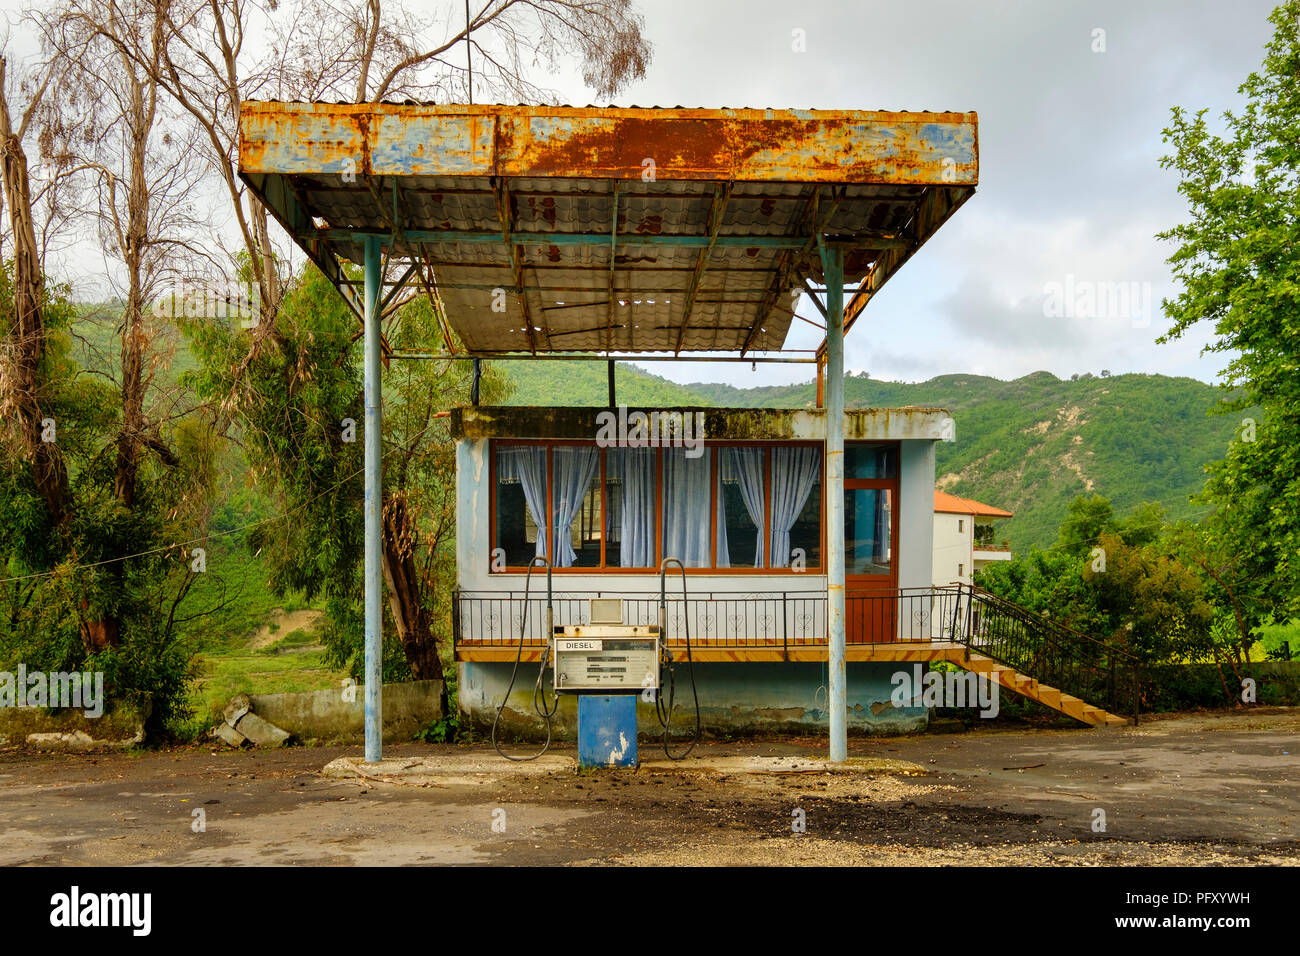 Old gas station near Ballsh, Qarier Fier, Albania - Stock Image